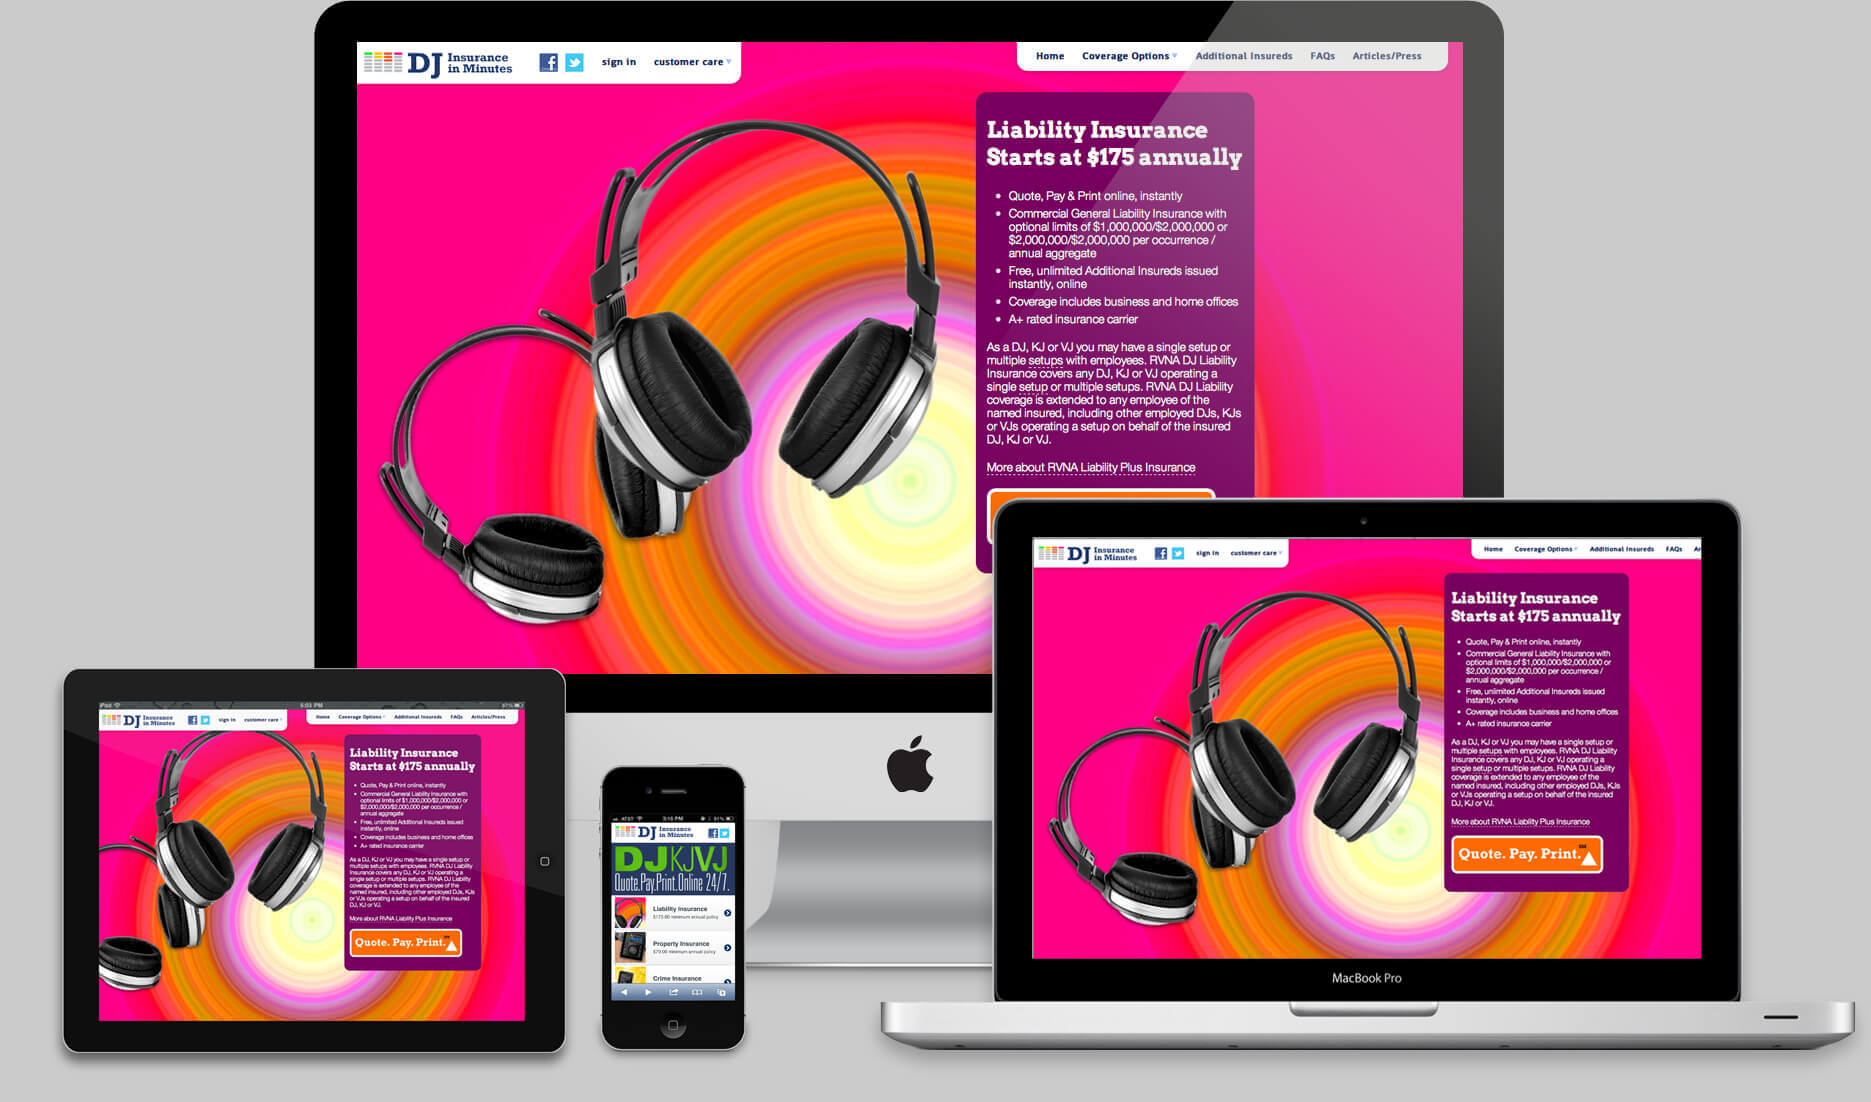 dj insurance websites on all devices